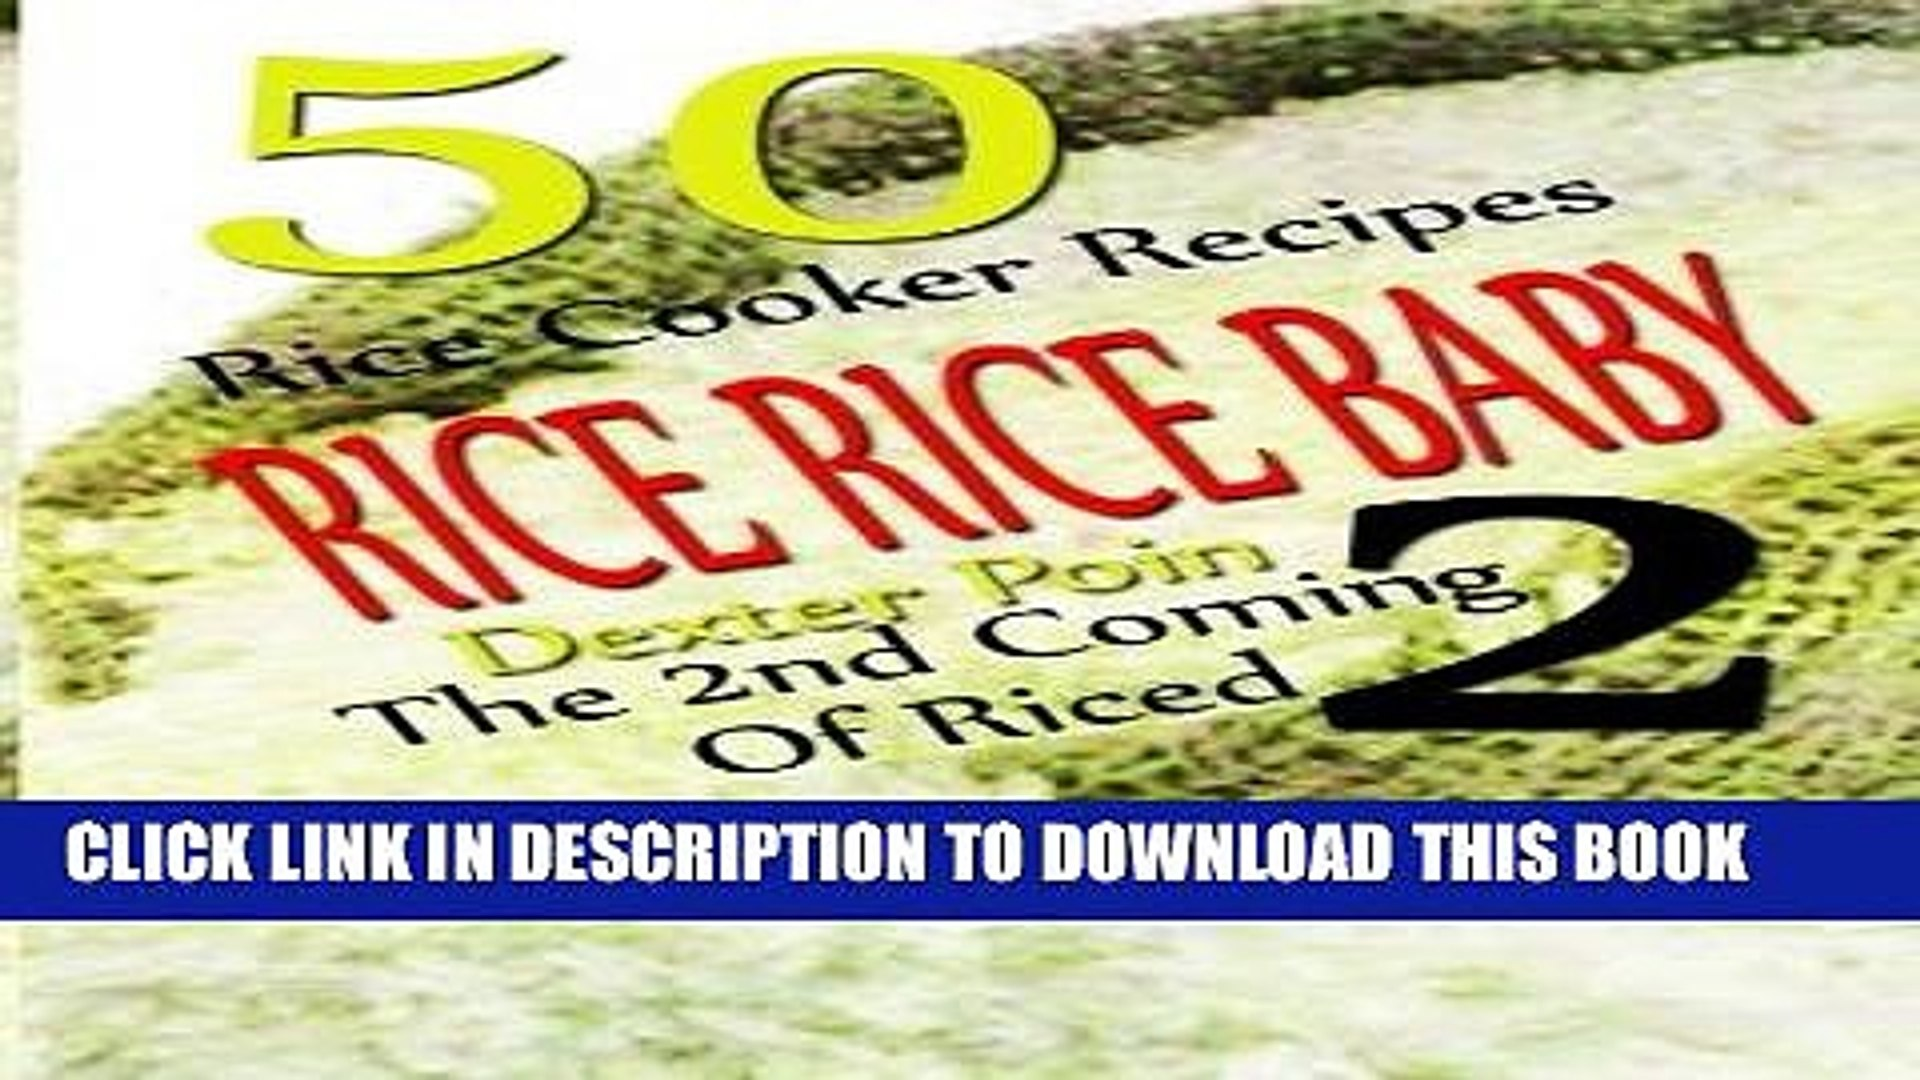 Best Seller Rice Rice Baby - The Second Coming Of Riced - 50 Rice Cooker Recipes (Rice Rice Baby,